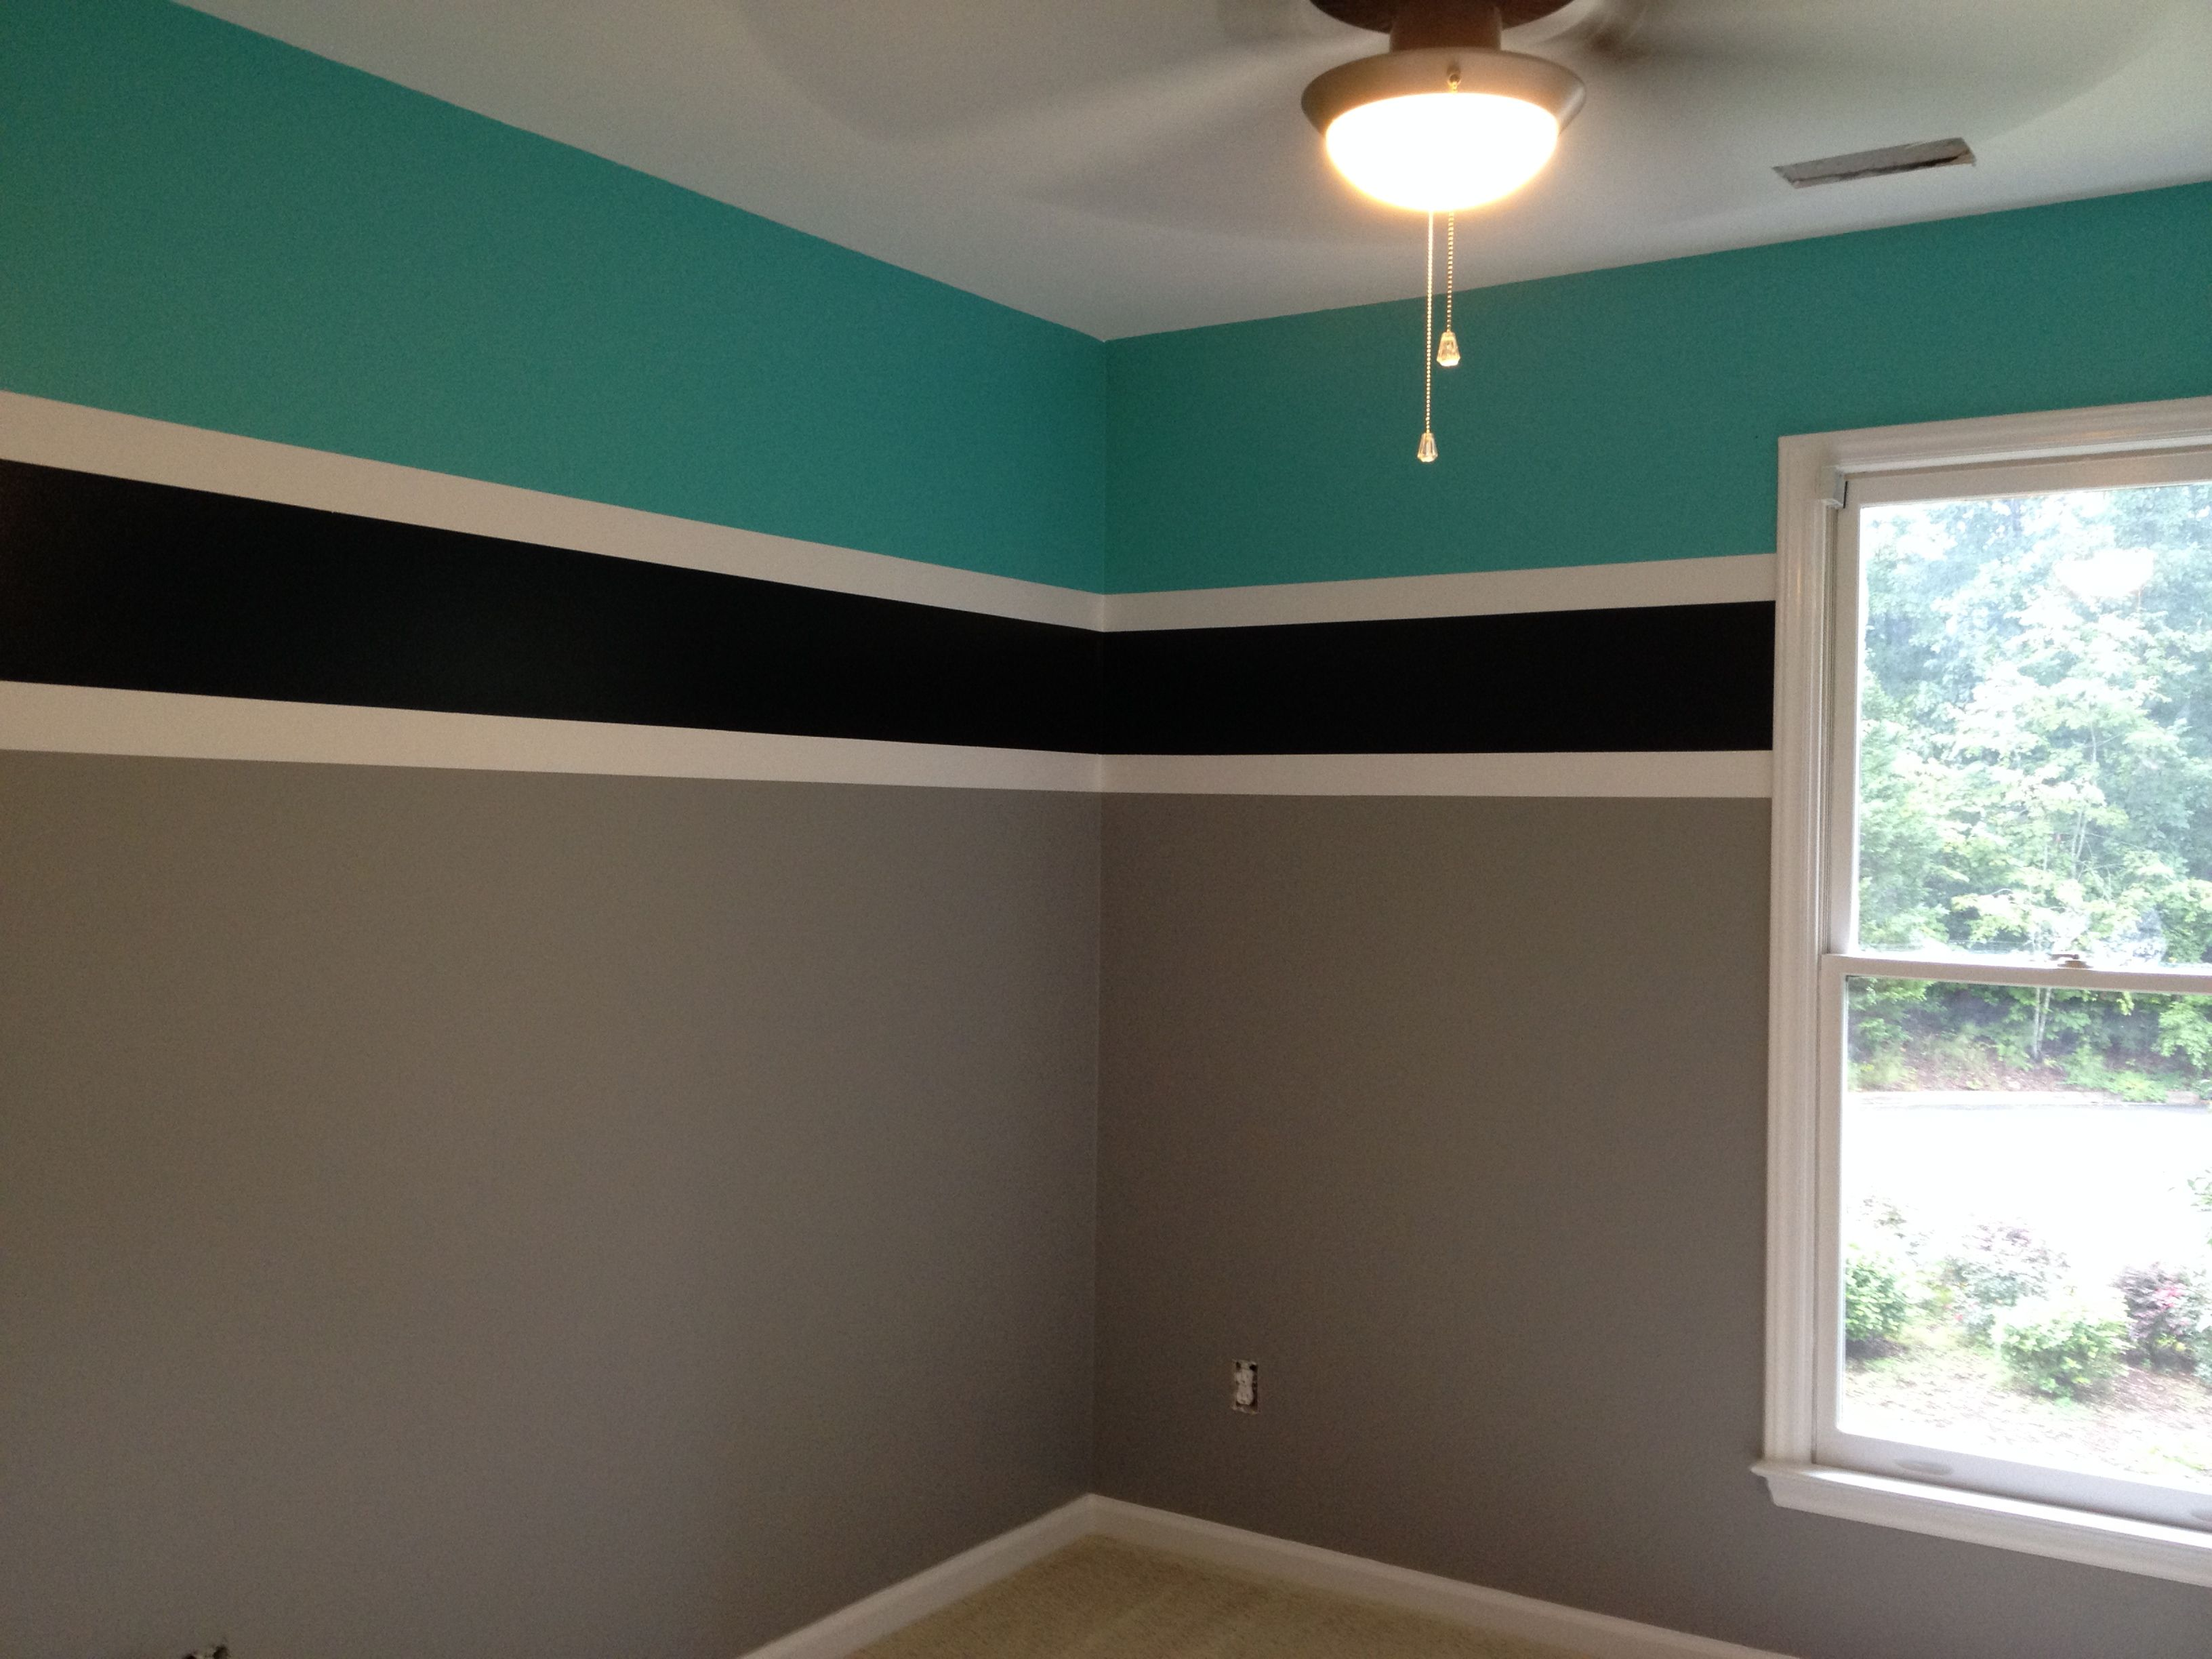 final product teenage boys room colors for a swimmer benjamin moore teal tone